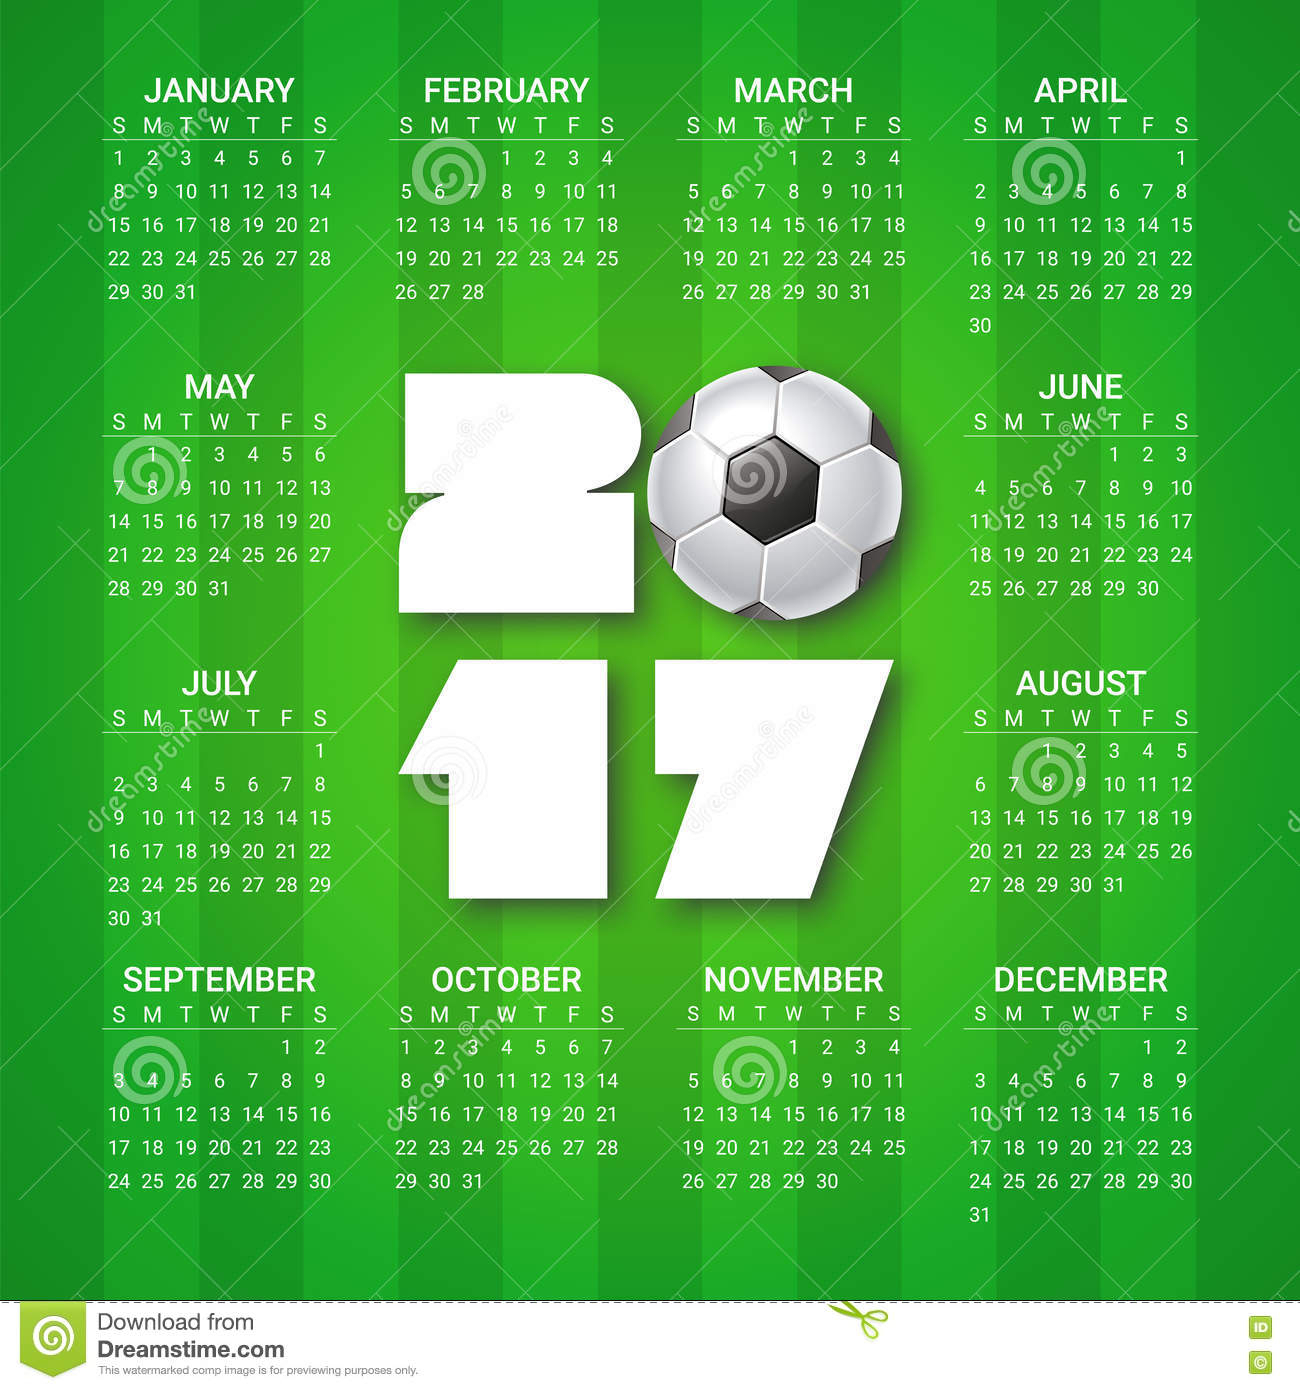 Calendar For 2017 Year With Soccer Ball On Bright Green Background pertaining to Template For Weekly Football Games Week 1